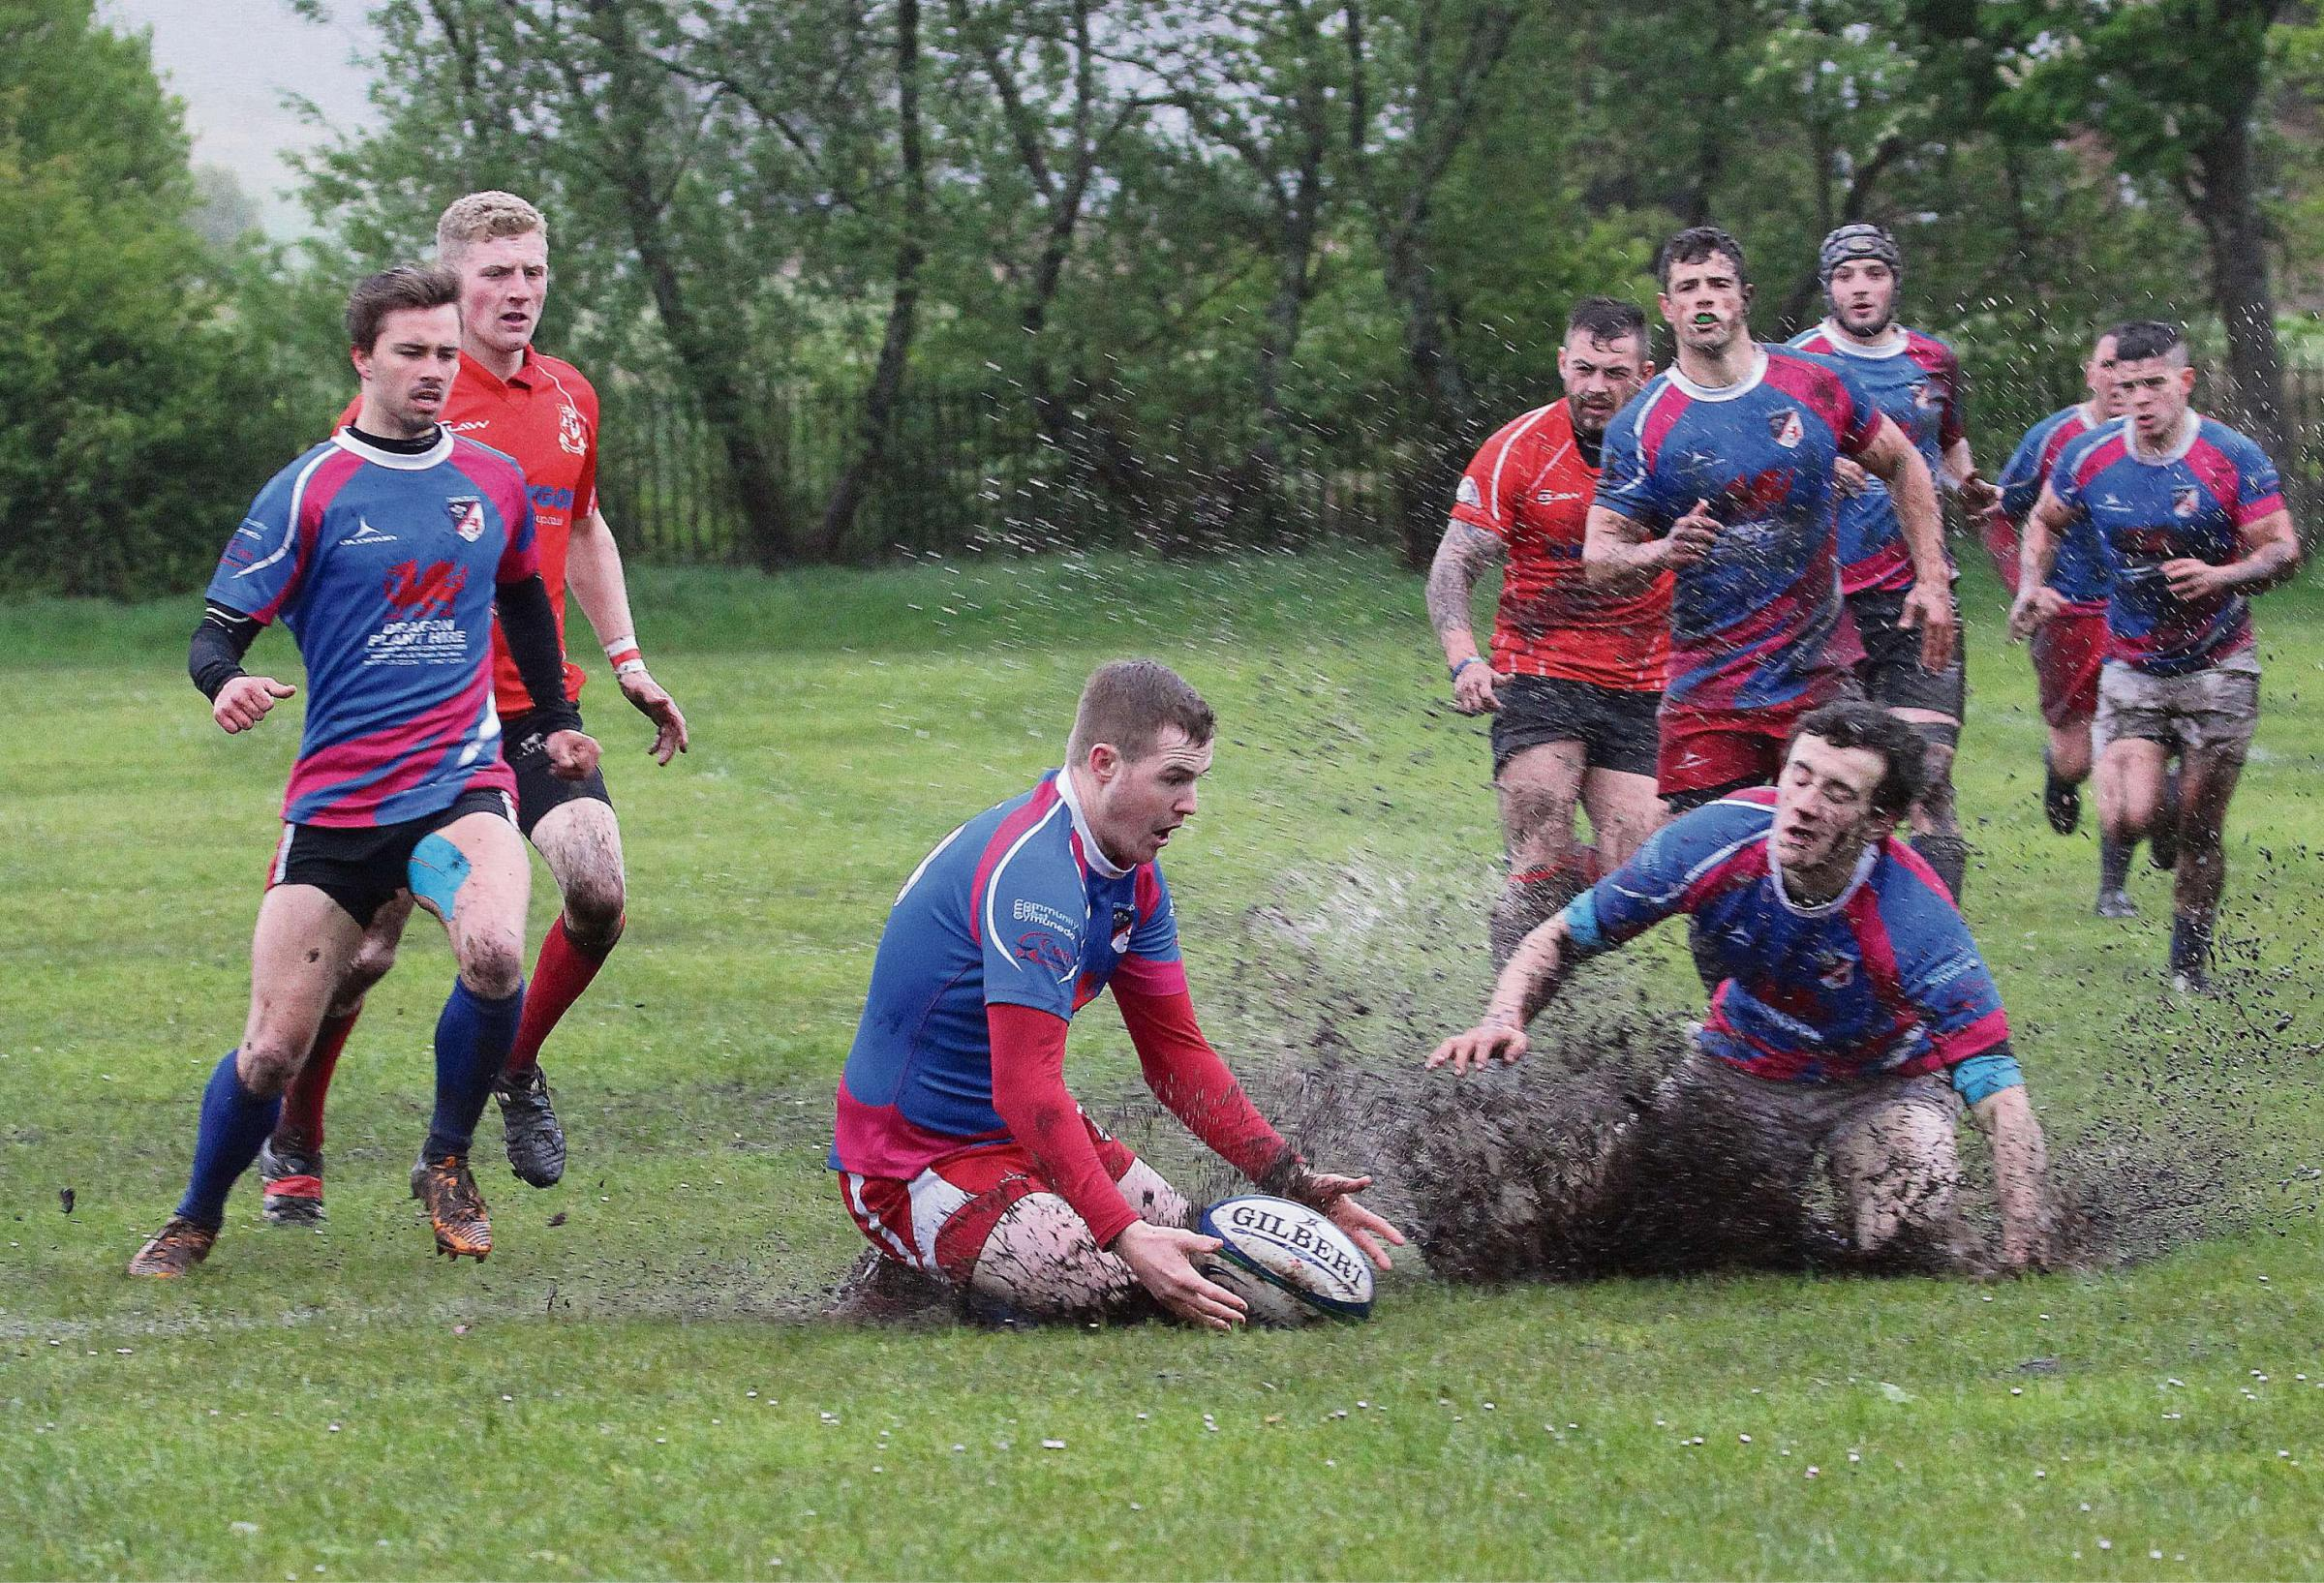 SLIP SLIDING AWAY : Christian Madge claims the ball for Cwmgors as the Cherries lose 16-12 to Cwmavon – but Cwmgors need just a point for the title. Pic: SDD